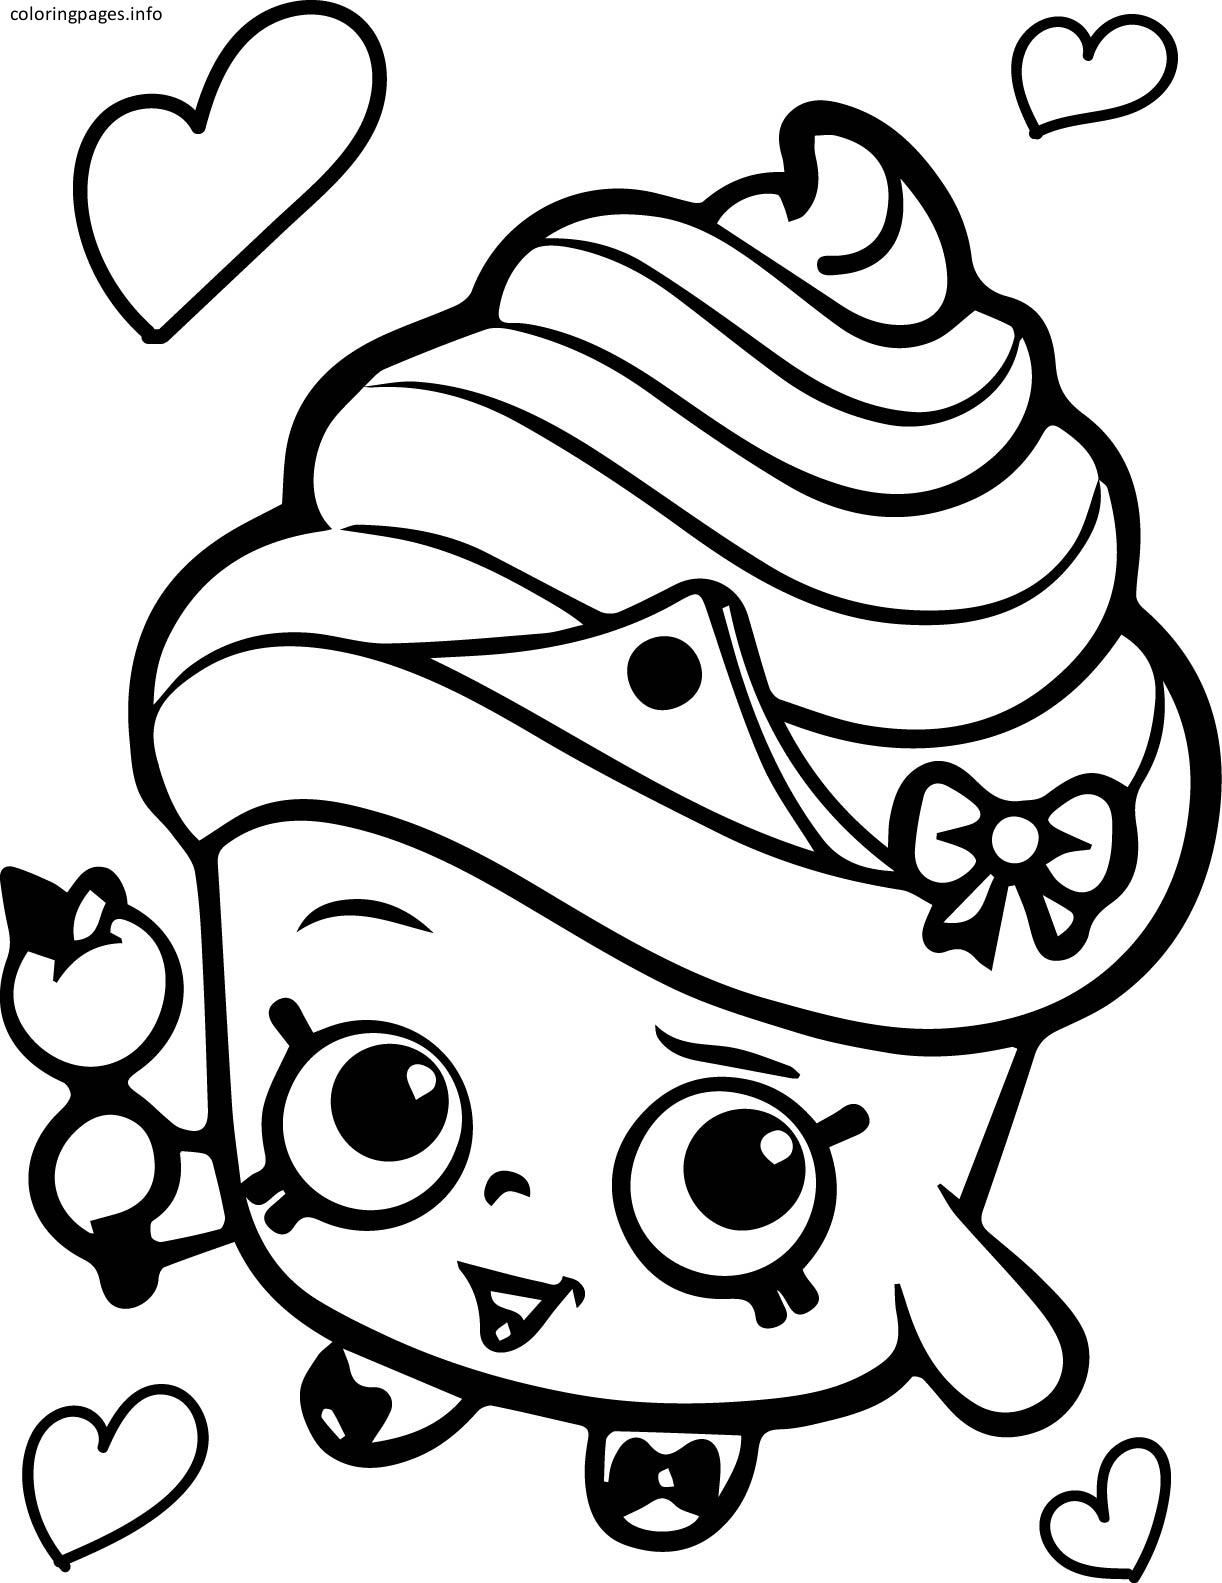 Shopkins Coloring Pages Cupcake Queen Shopkins Coloring Pages